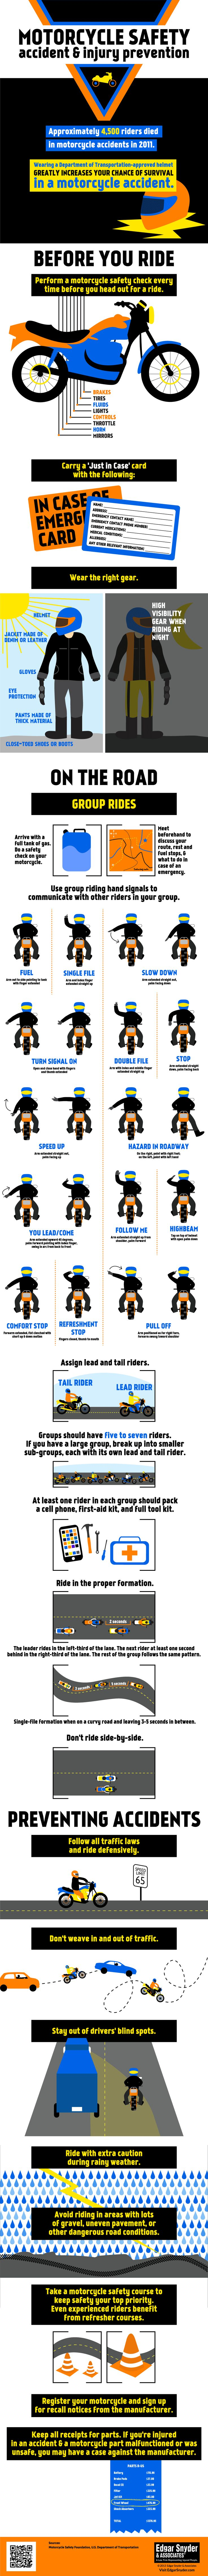 "May is Motorcycle Safety Awareness Month. Always remember to perform a motorcycle safety check before you ride, carry a ""just in case"" card, wear the right gear, and stay safe. Great information for all motorists to remember, not just motorcyclists!"